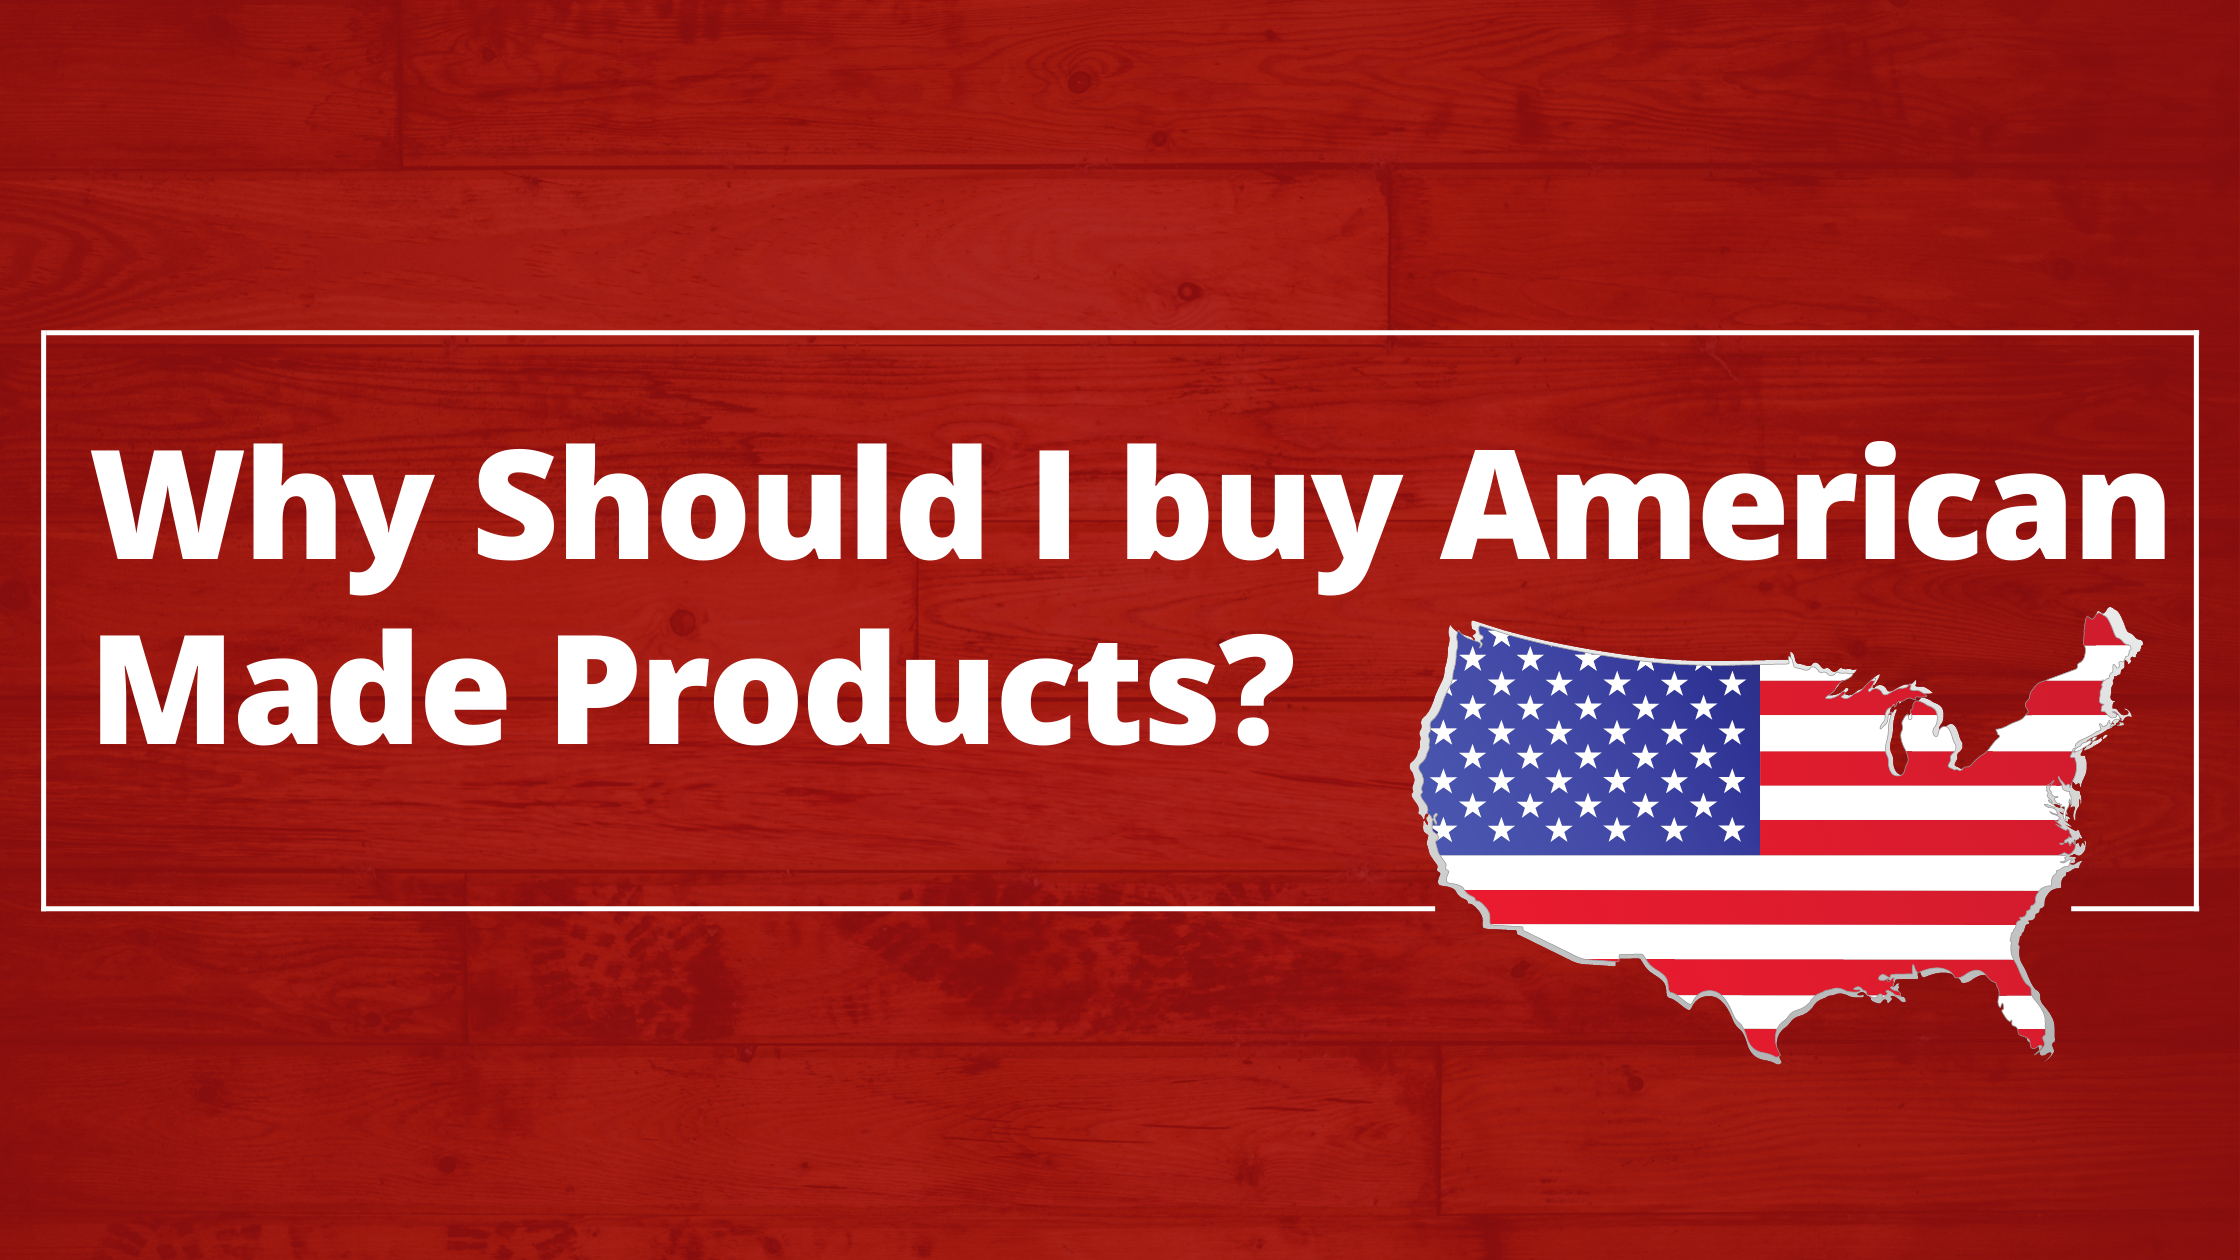 Why Should I buy American Made Products?